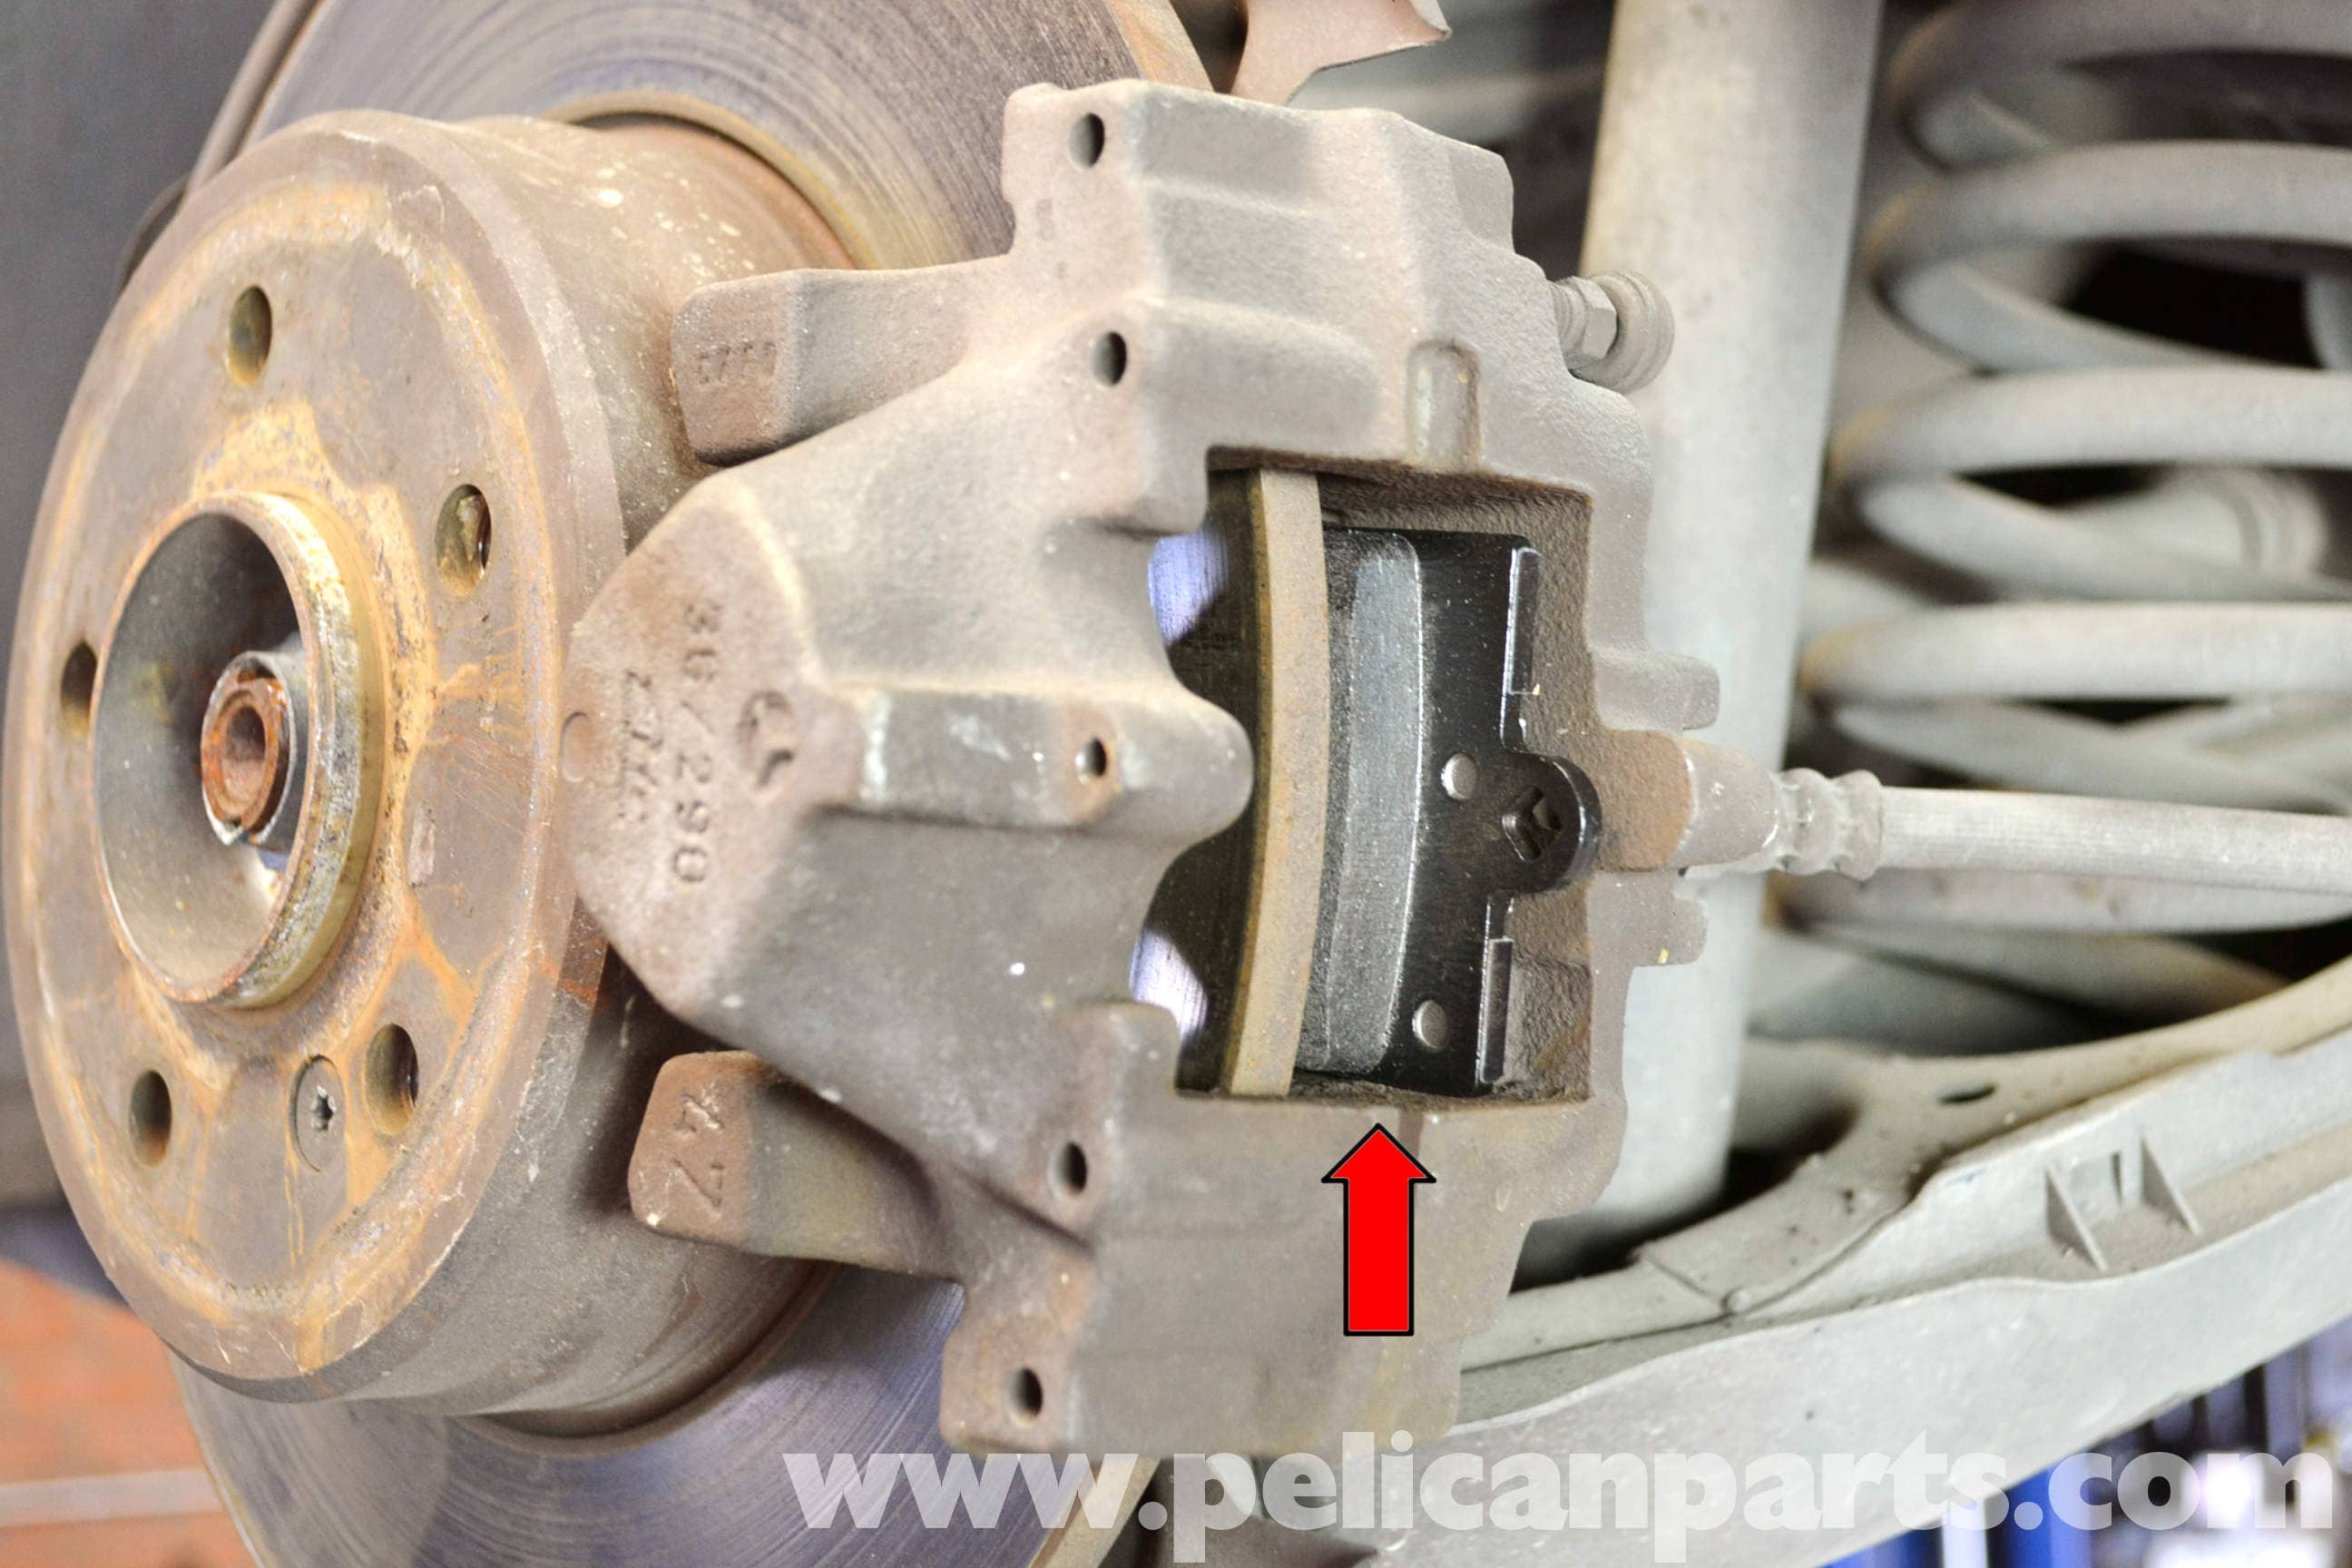 Mercedes benz w203 rear brake pad replacement 2001 2007 for Mercedes benz rotors replacement